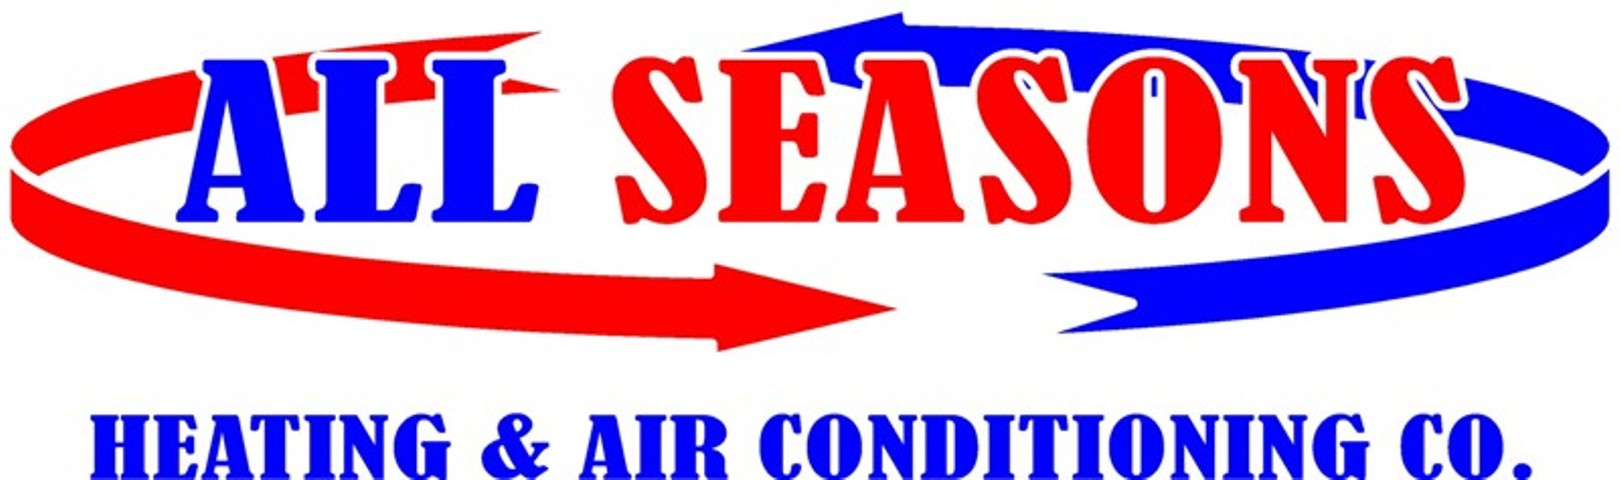 All Seasons Heating & Air Conditioning Co image 6